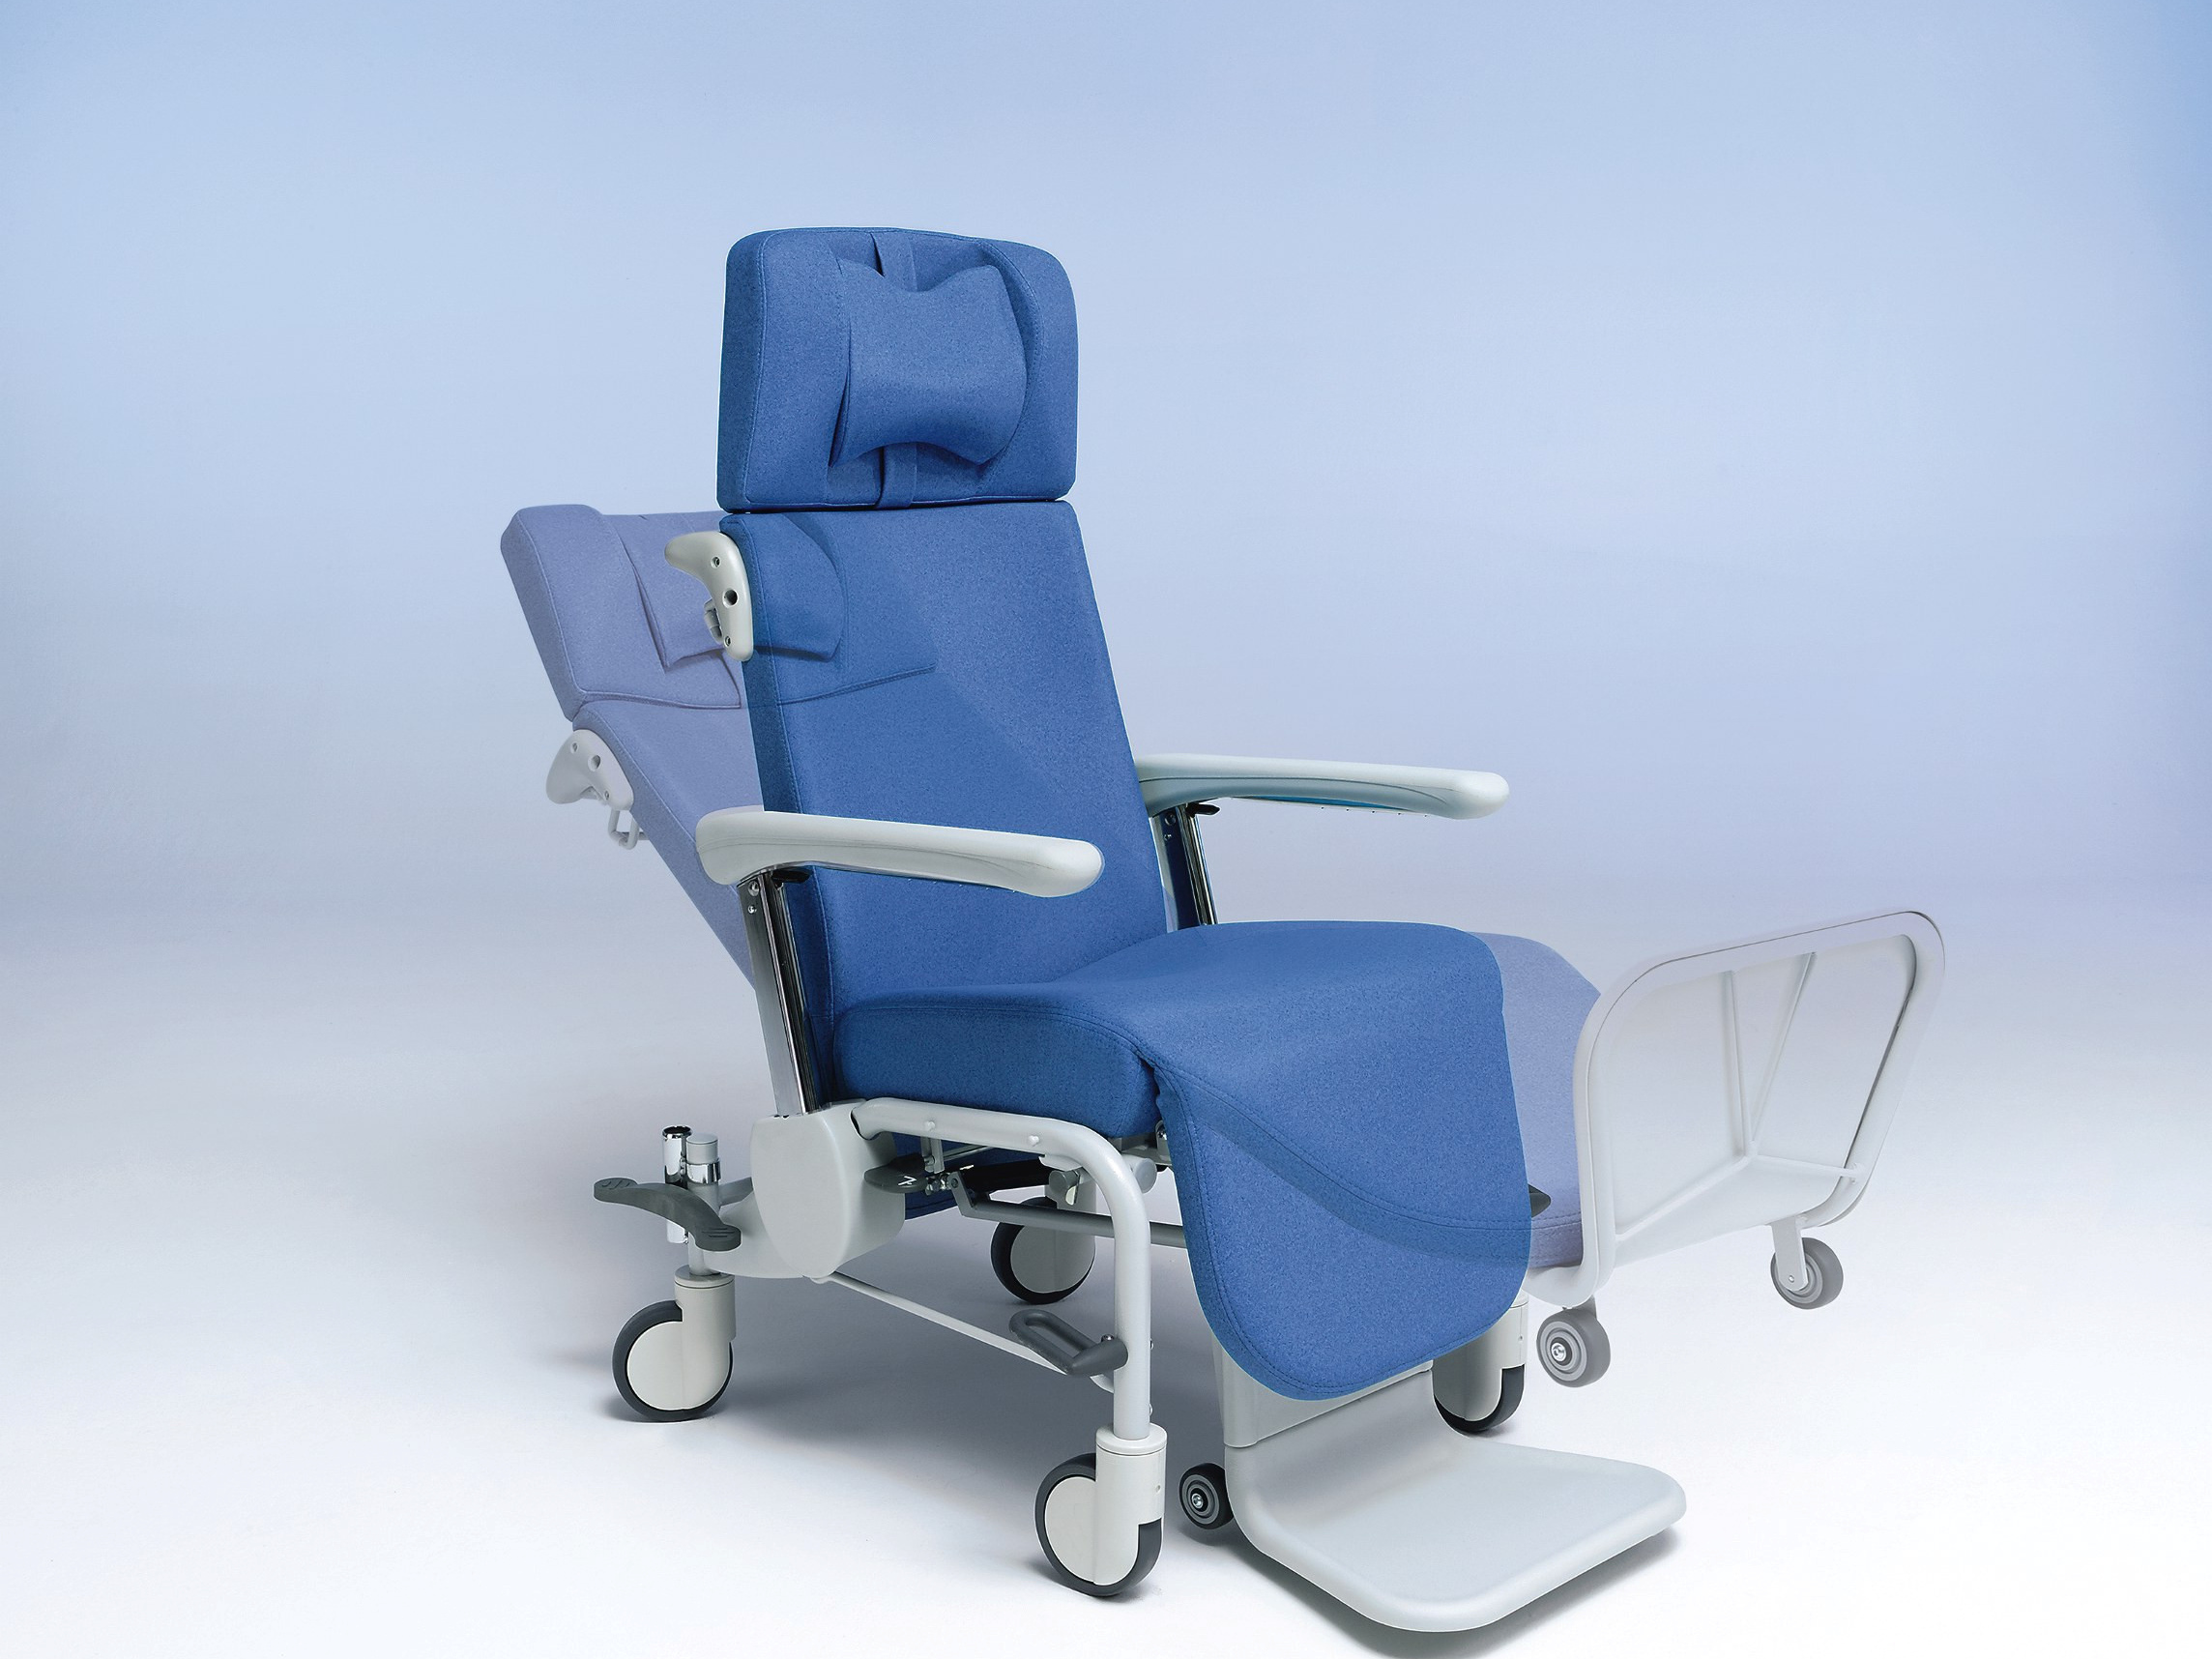 Fixed footrest of the Ravello-Curo care chair